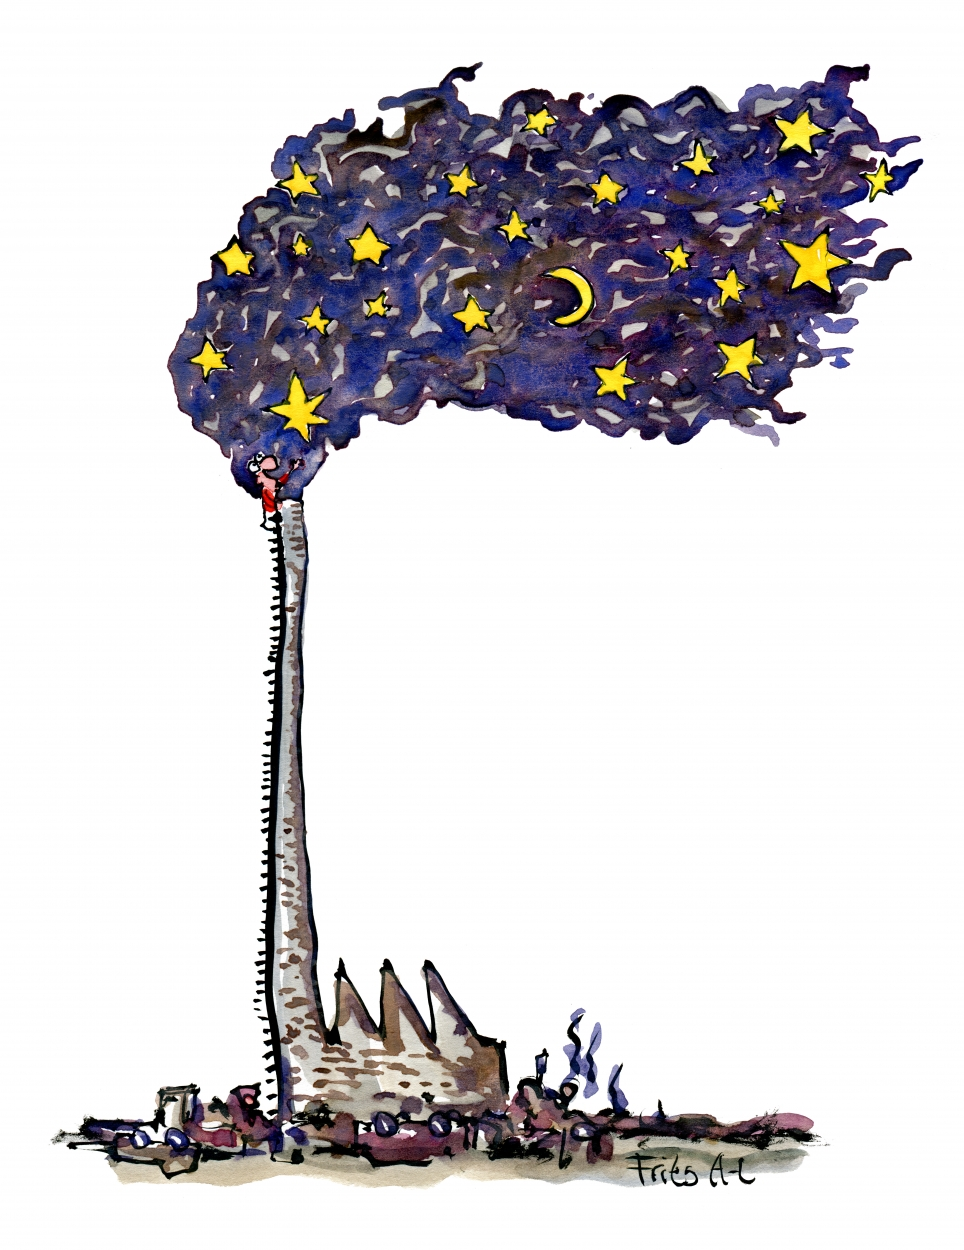 964x1250 Dream Star Factory Making New From Old Vision Illustration